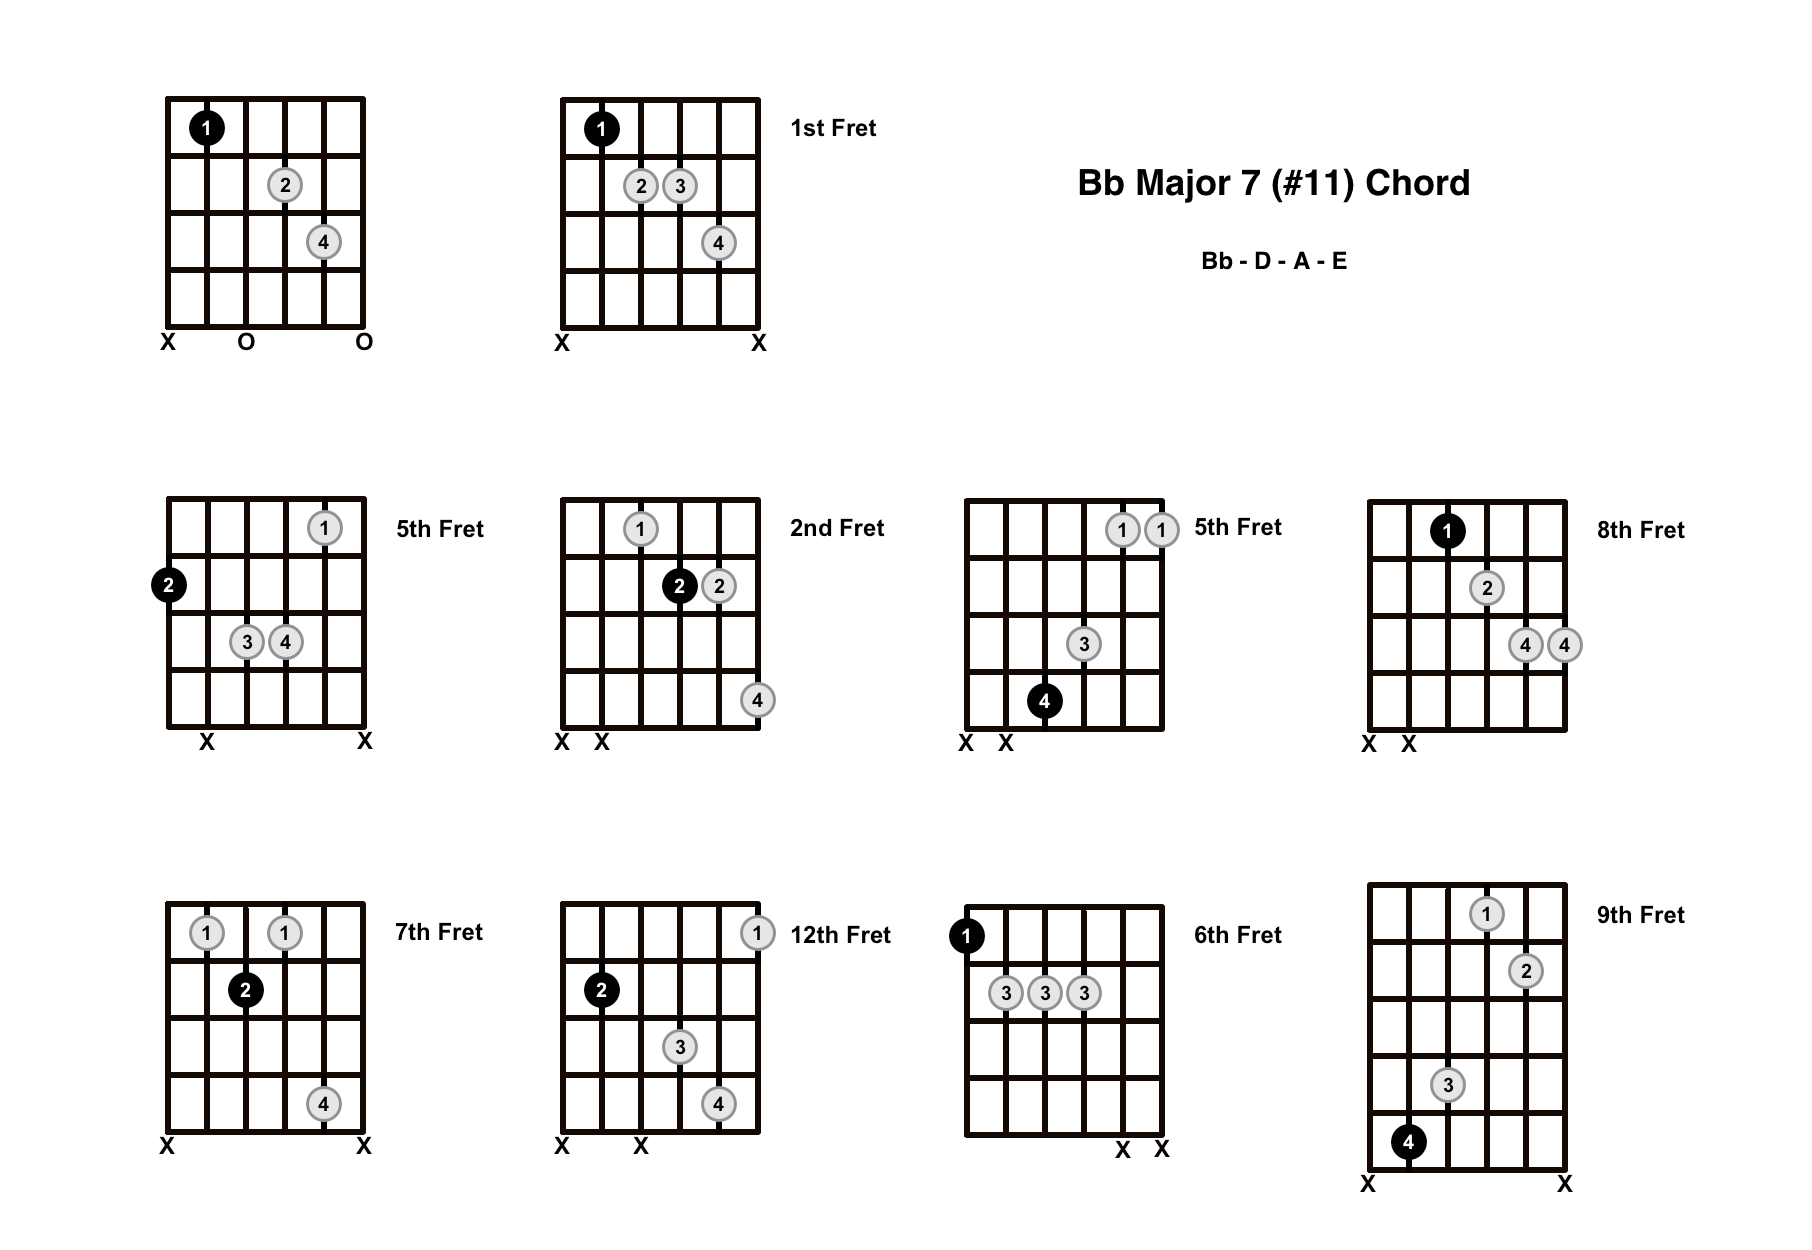 Bbmaj7#11 Chord On The Guitar (B Flat Major 7 #11) – Diagrams, Finger Positions and Theory